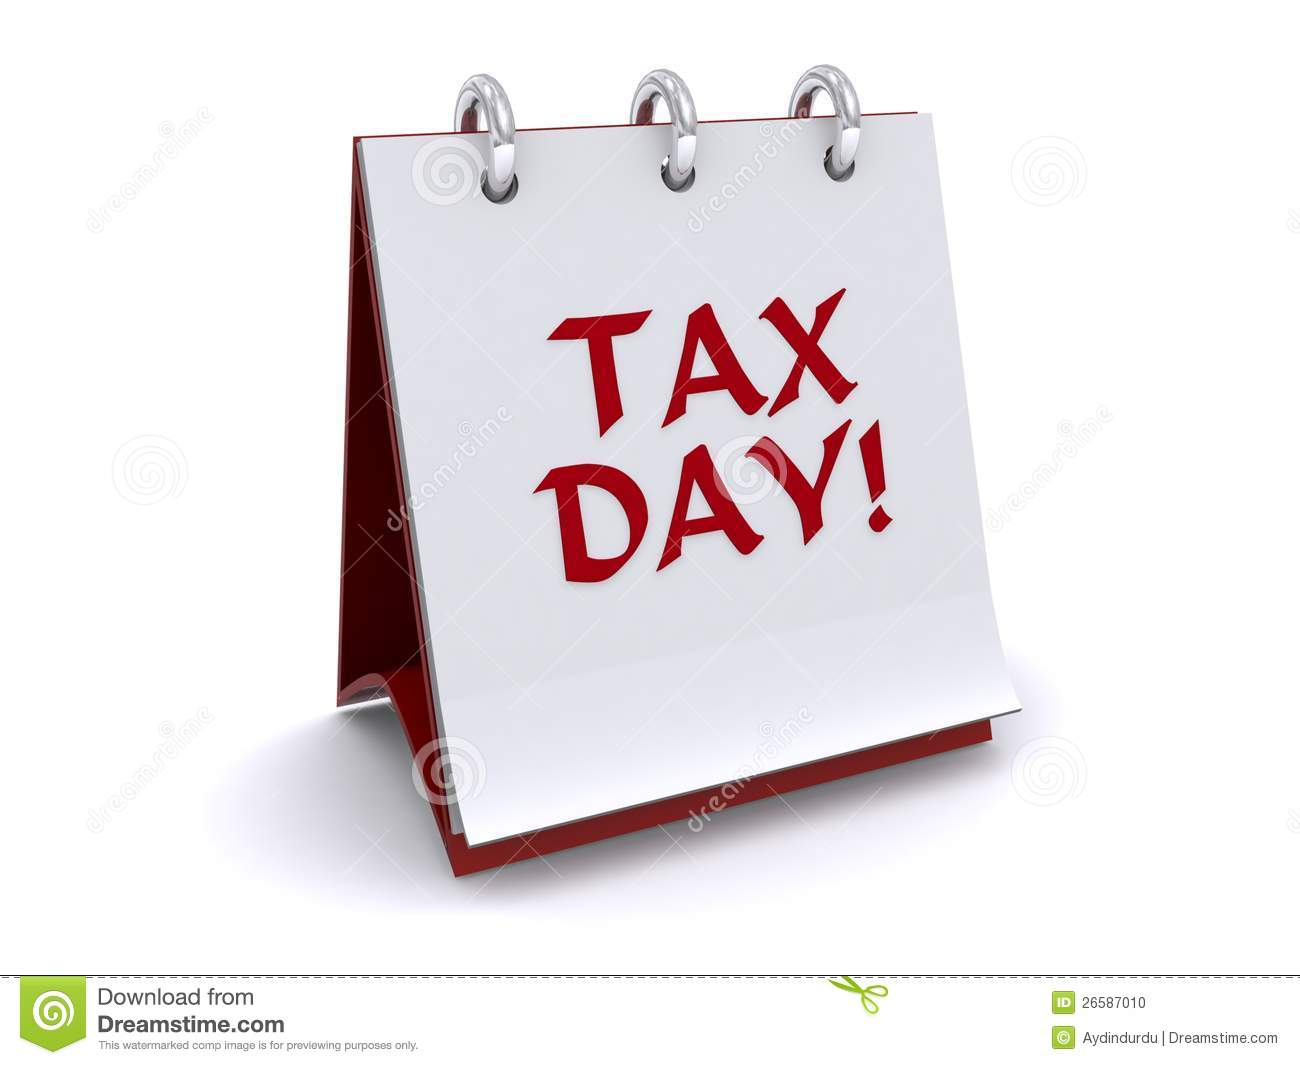 states with no income tax map with Stock Photo Tax Day Flip Book Image26587010 on Which States Are Best For Retirement further Tax Day 2016 likewise Megazine additionally Stock Photography File Tax Return Image23086762 besides 1809744.